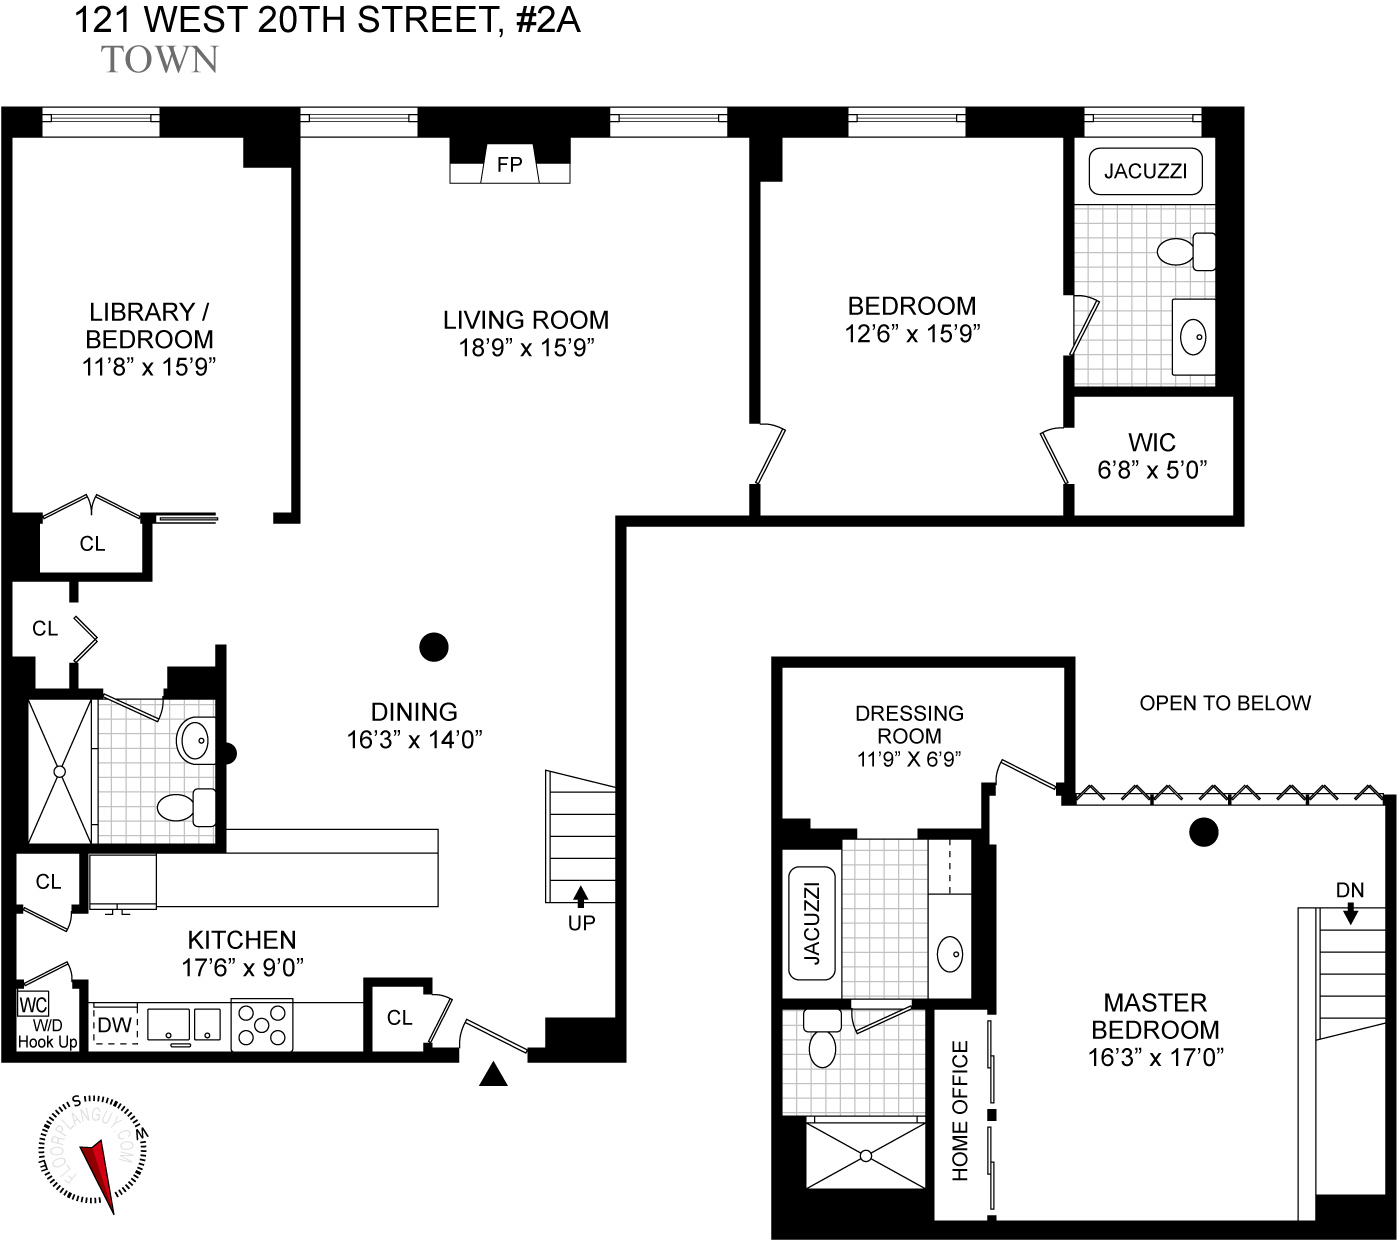 Unit 2a 121 west 20th street floor plan new york for Floor plans manhattan apartment buildings